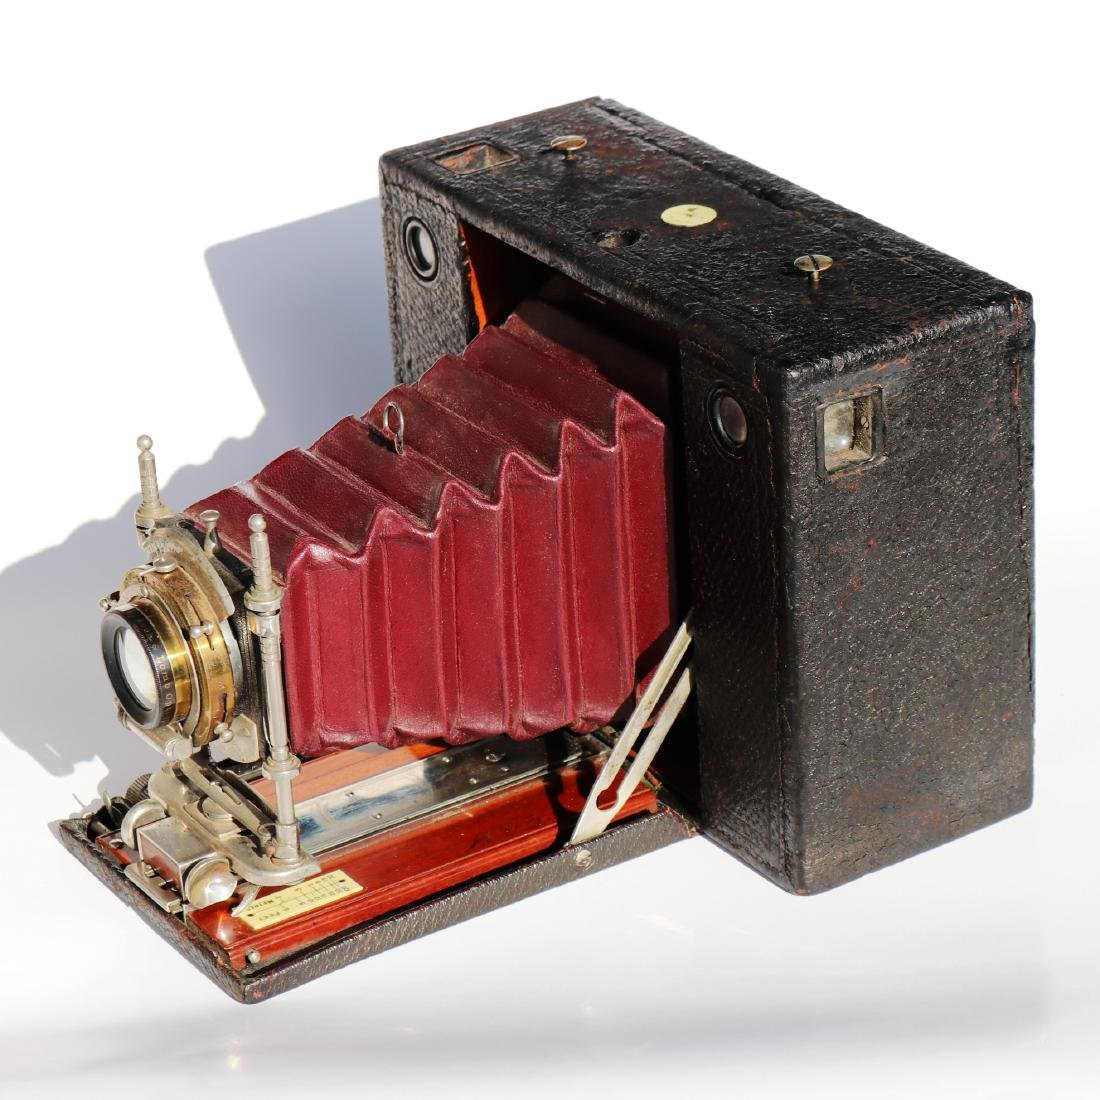 No. 3 Cartridge Kodak Camera, 1900